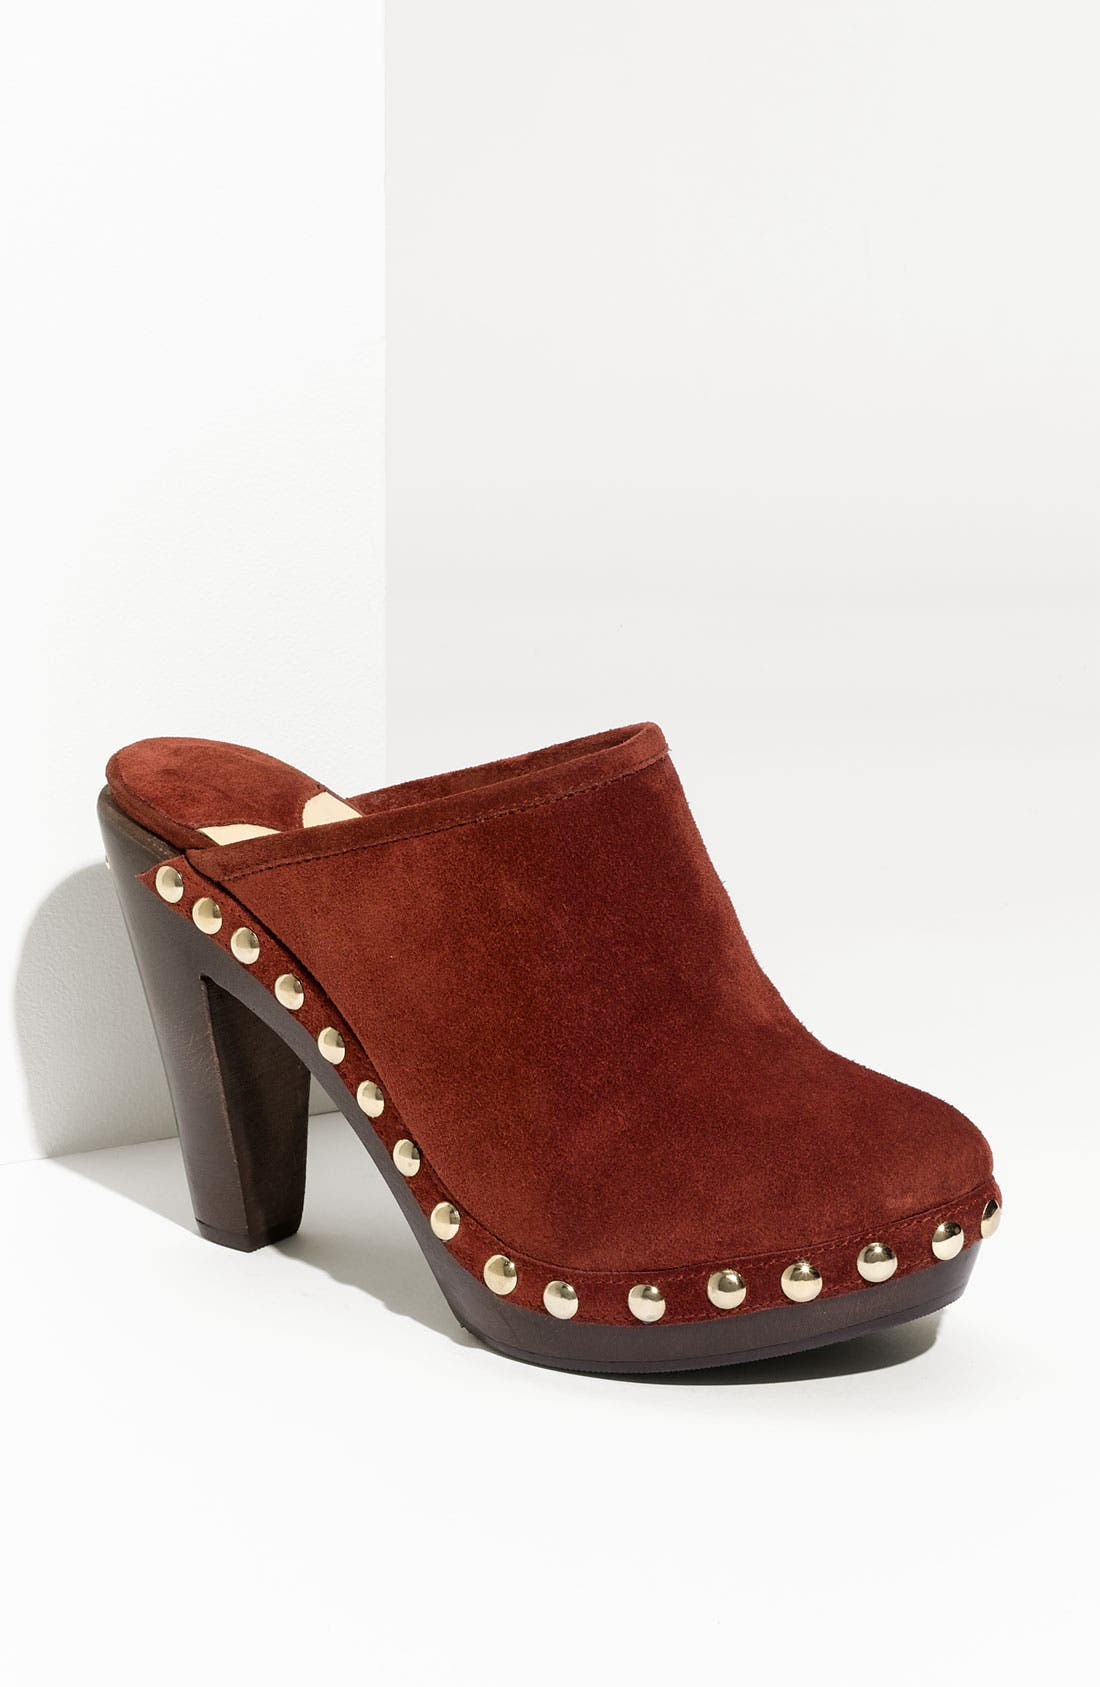 Alternate Image 1 Selected - Jimmy Choo 'Utmost' Clog